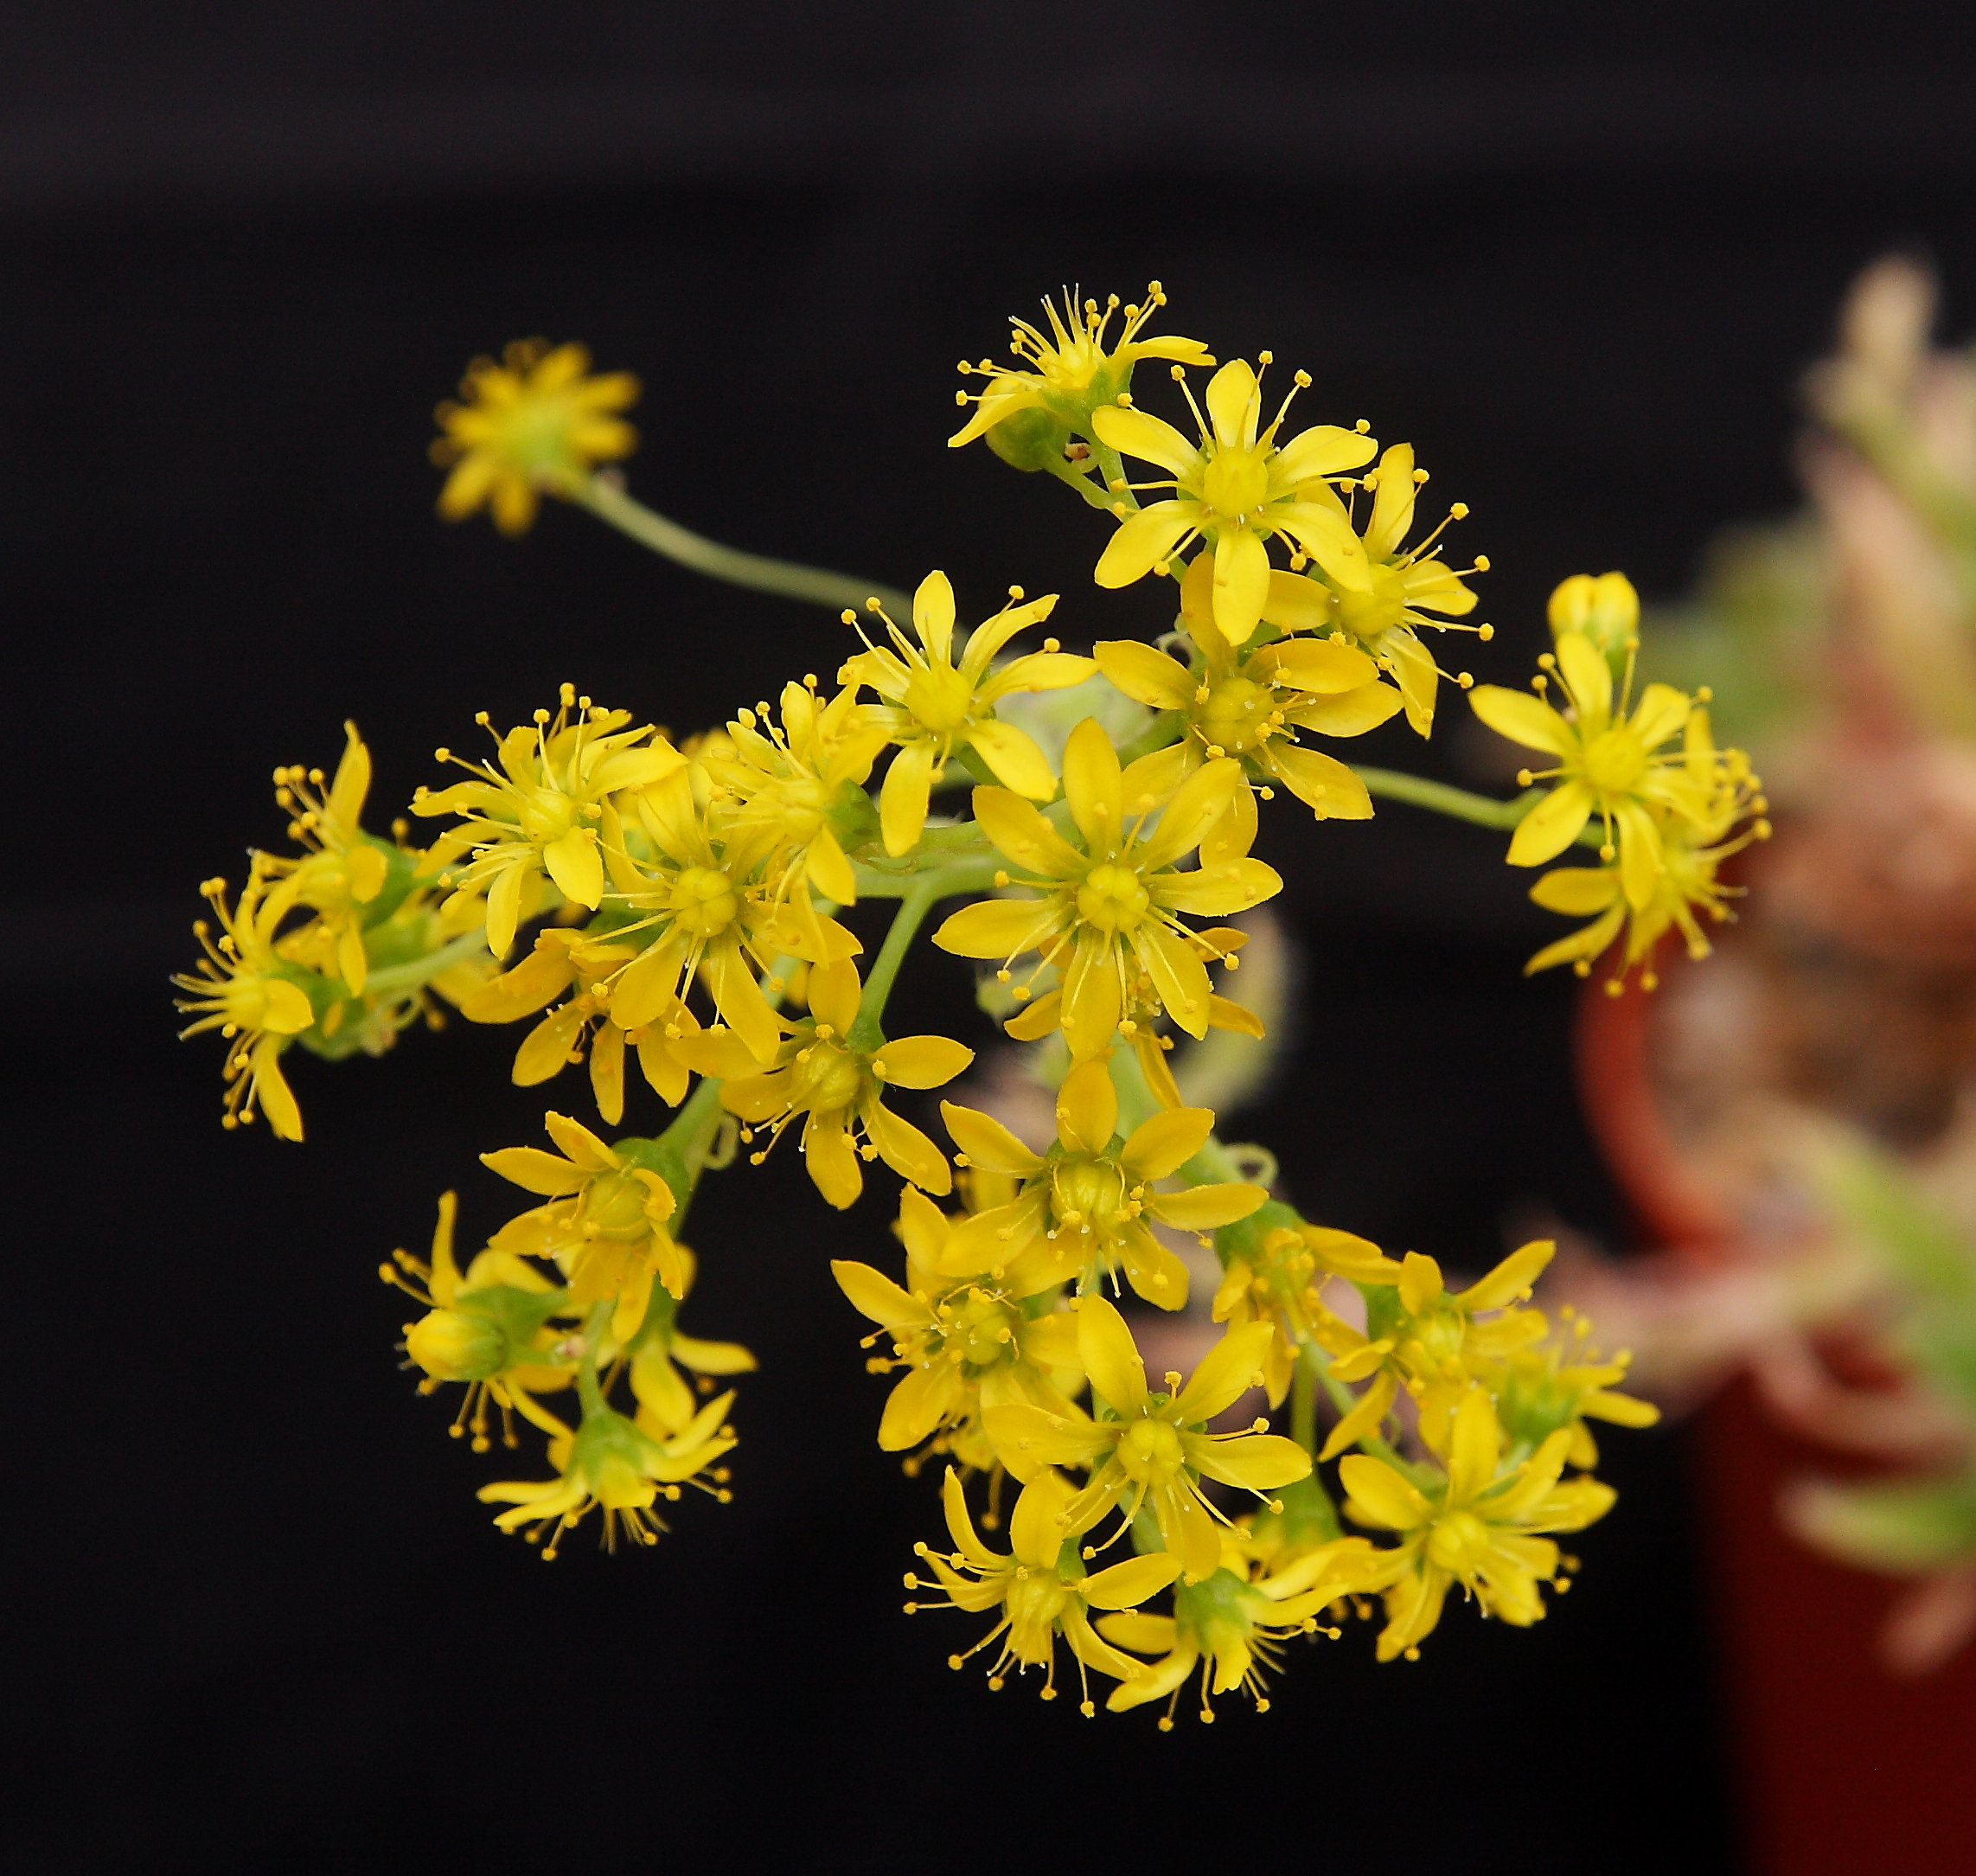 Aeonium simsii flowers 7 May 2018 (2).JPG